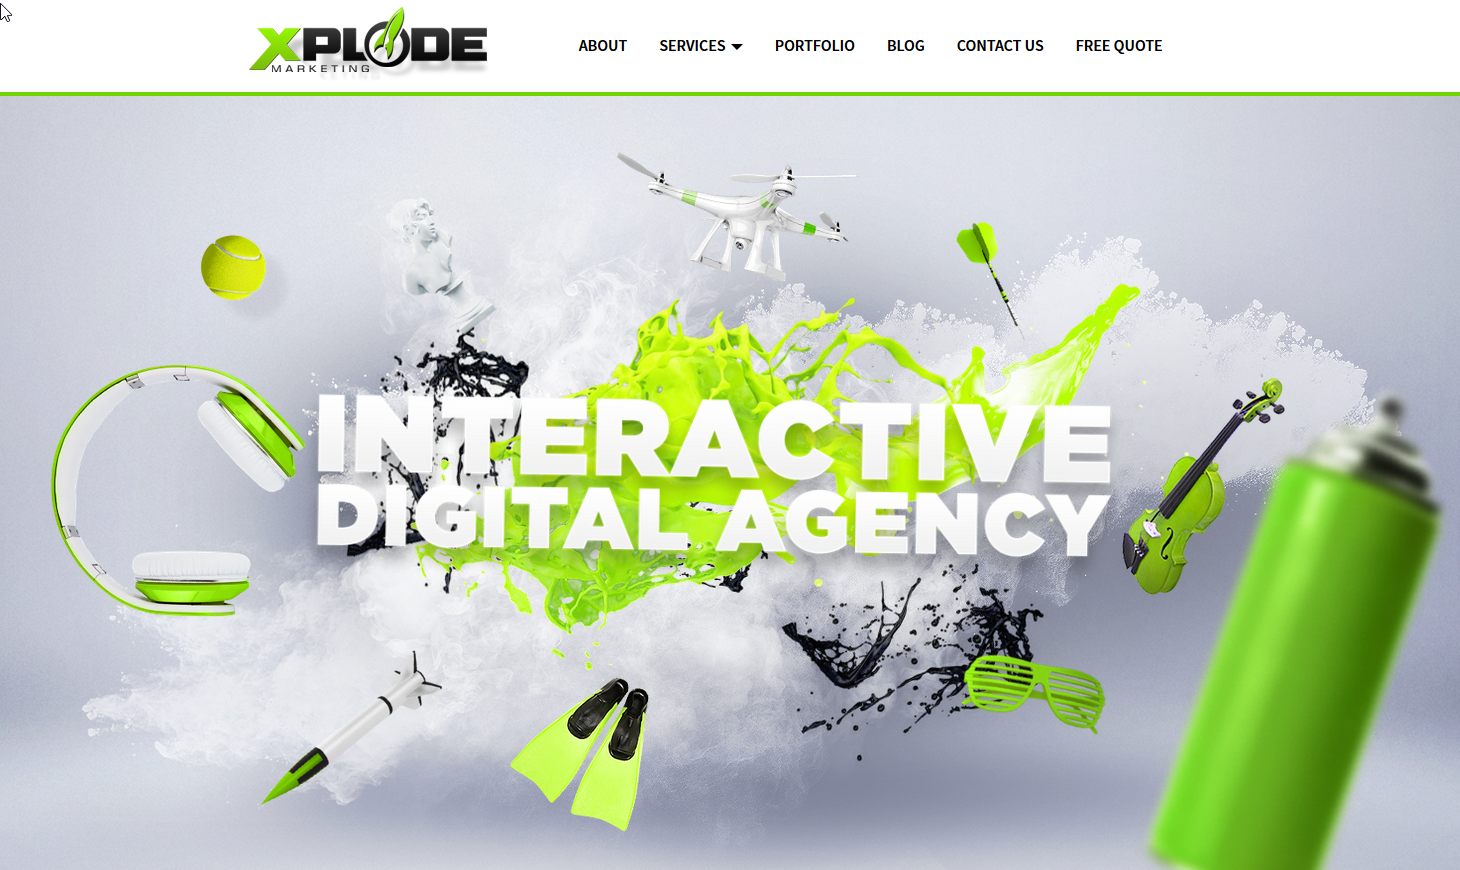 Sarasota Web Design, Development & Internet Marketing - Xplode Marketing